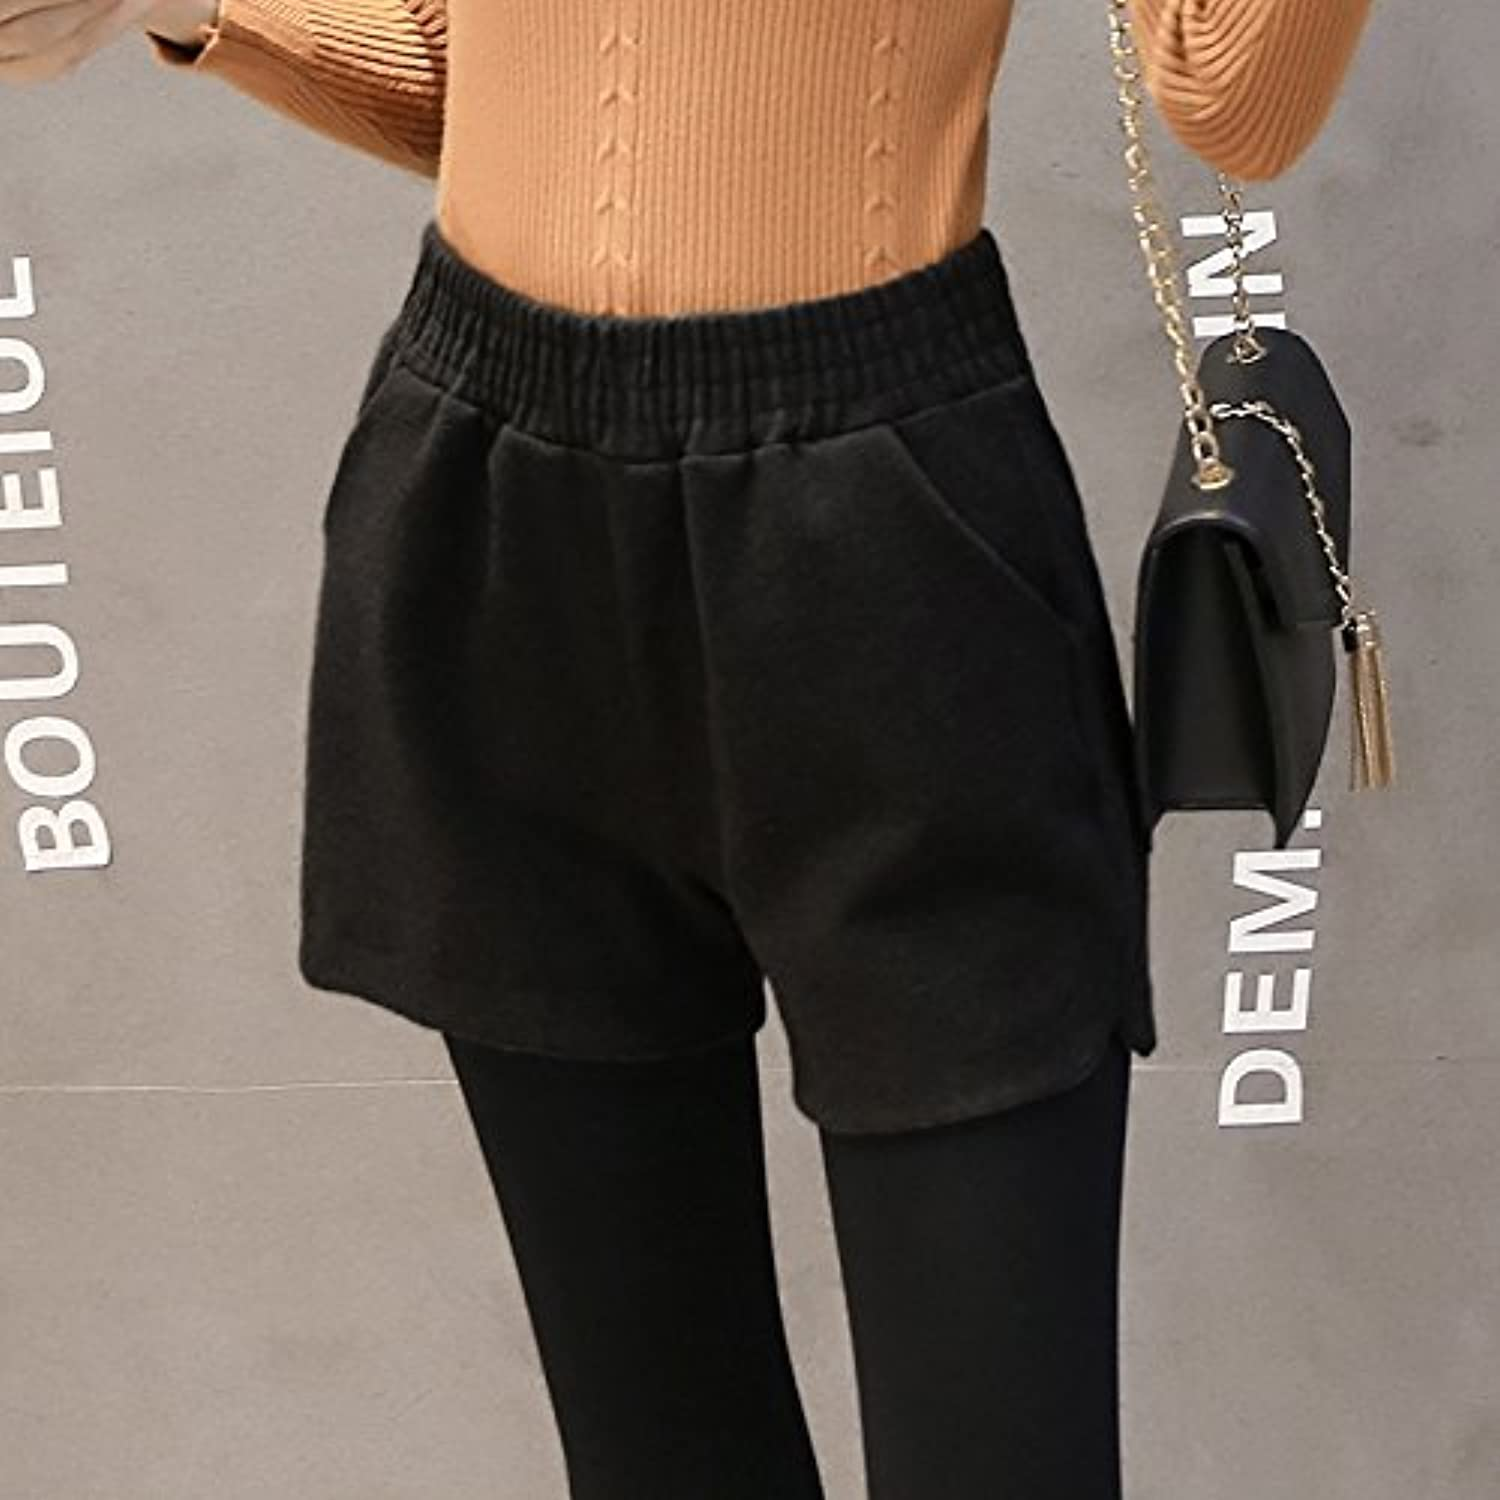 GAOLIM Autumn and Winter Shorts Women Loose High Waist Wide Leg Pants Outside Pants Pants Boots, S, 2319 Black